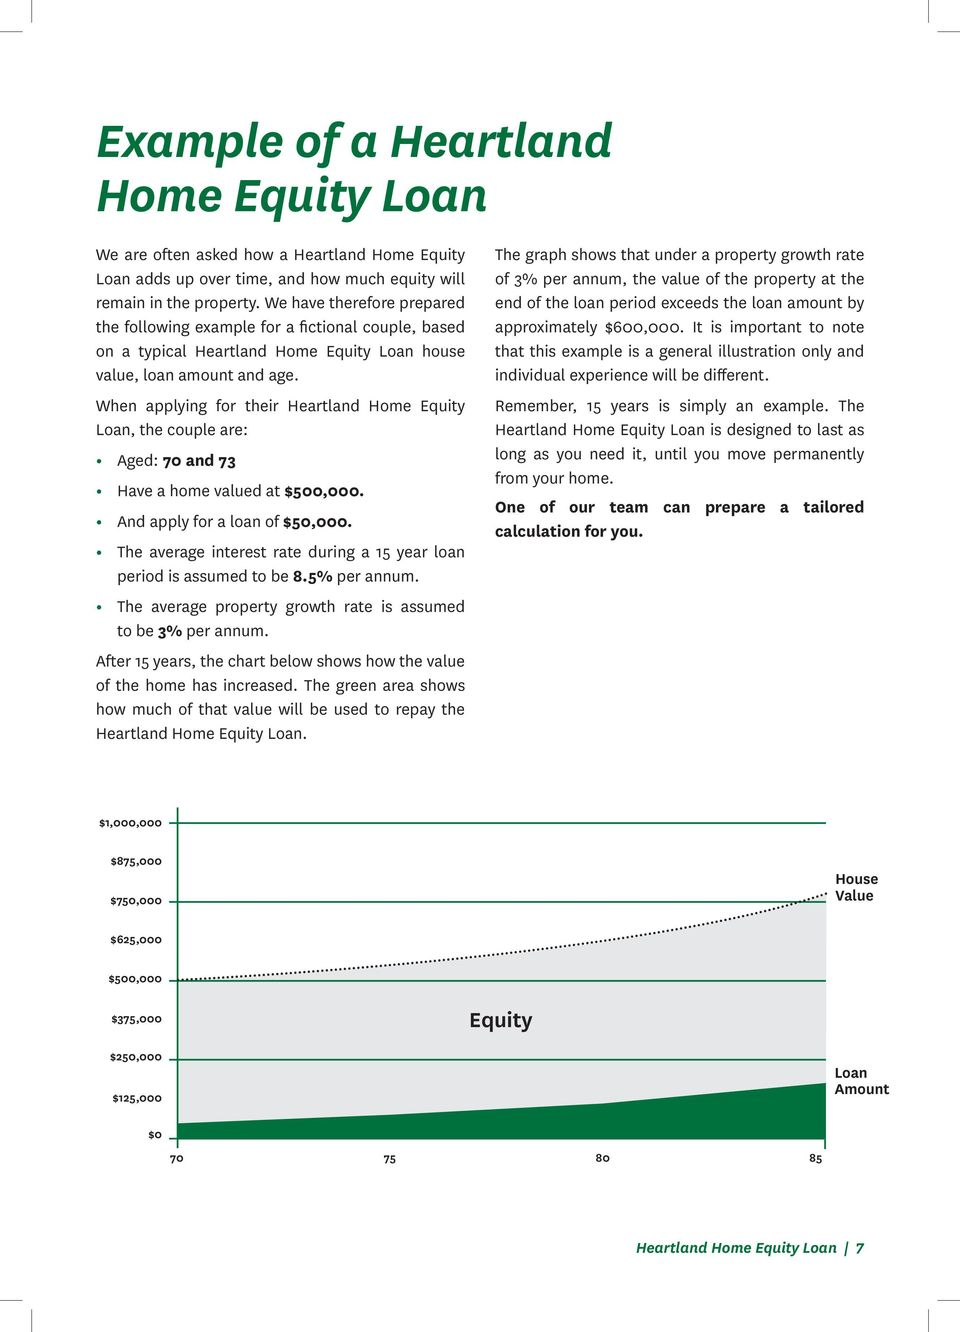 When applying for their Heartland Home Equity Loan, the couple are: Aged: 70 and 73 Have a home valued at $500,000. And apply for a loan of $50,000.